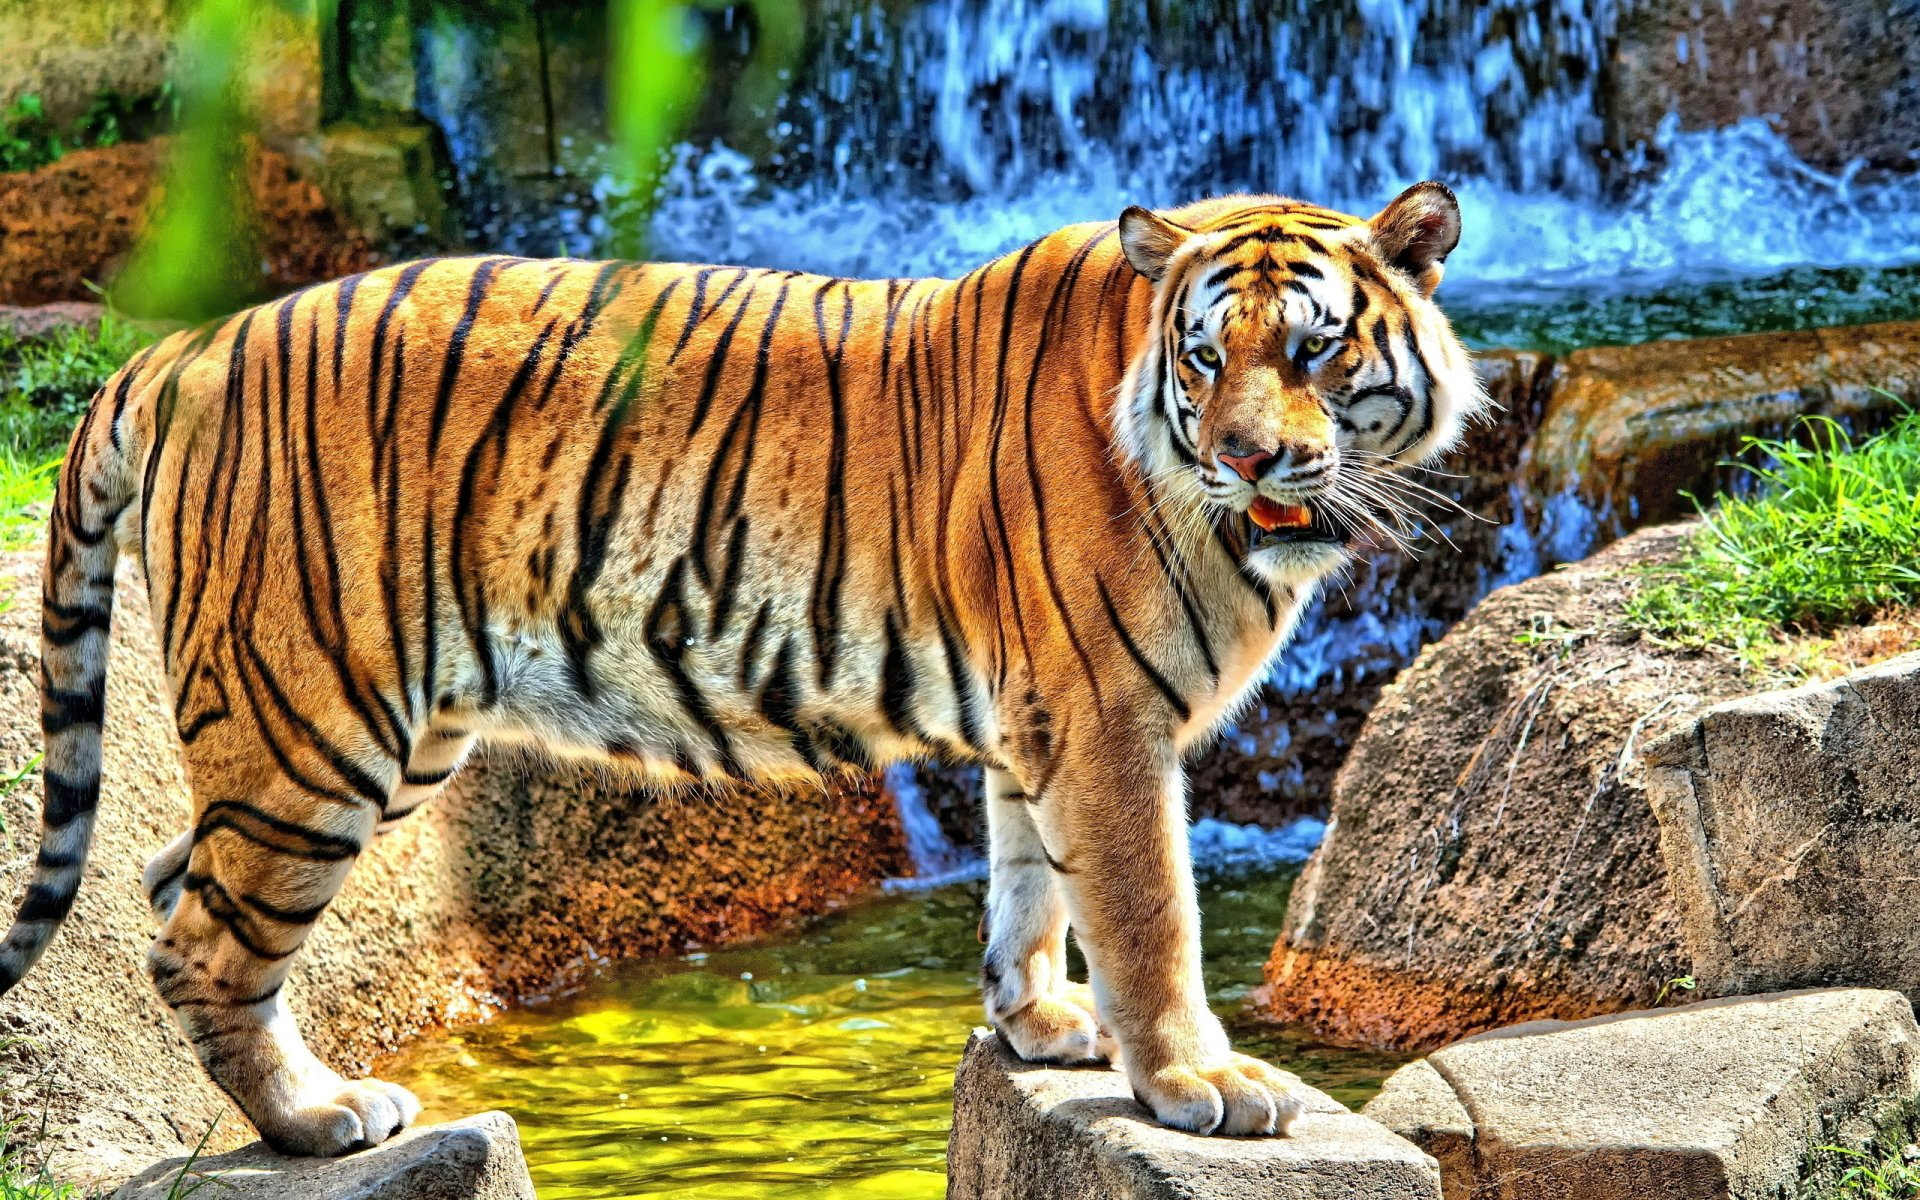 Tiger hd wallpaper background image 2560x1600 id 337331 wallpaper abyss - Tiger hd wallpaper for pc ...